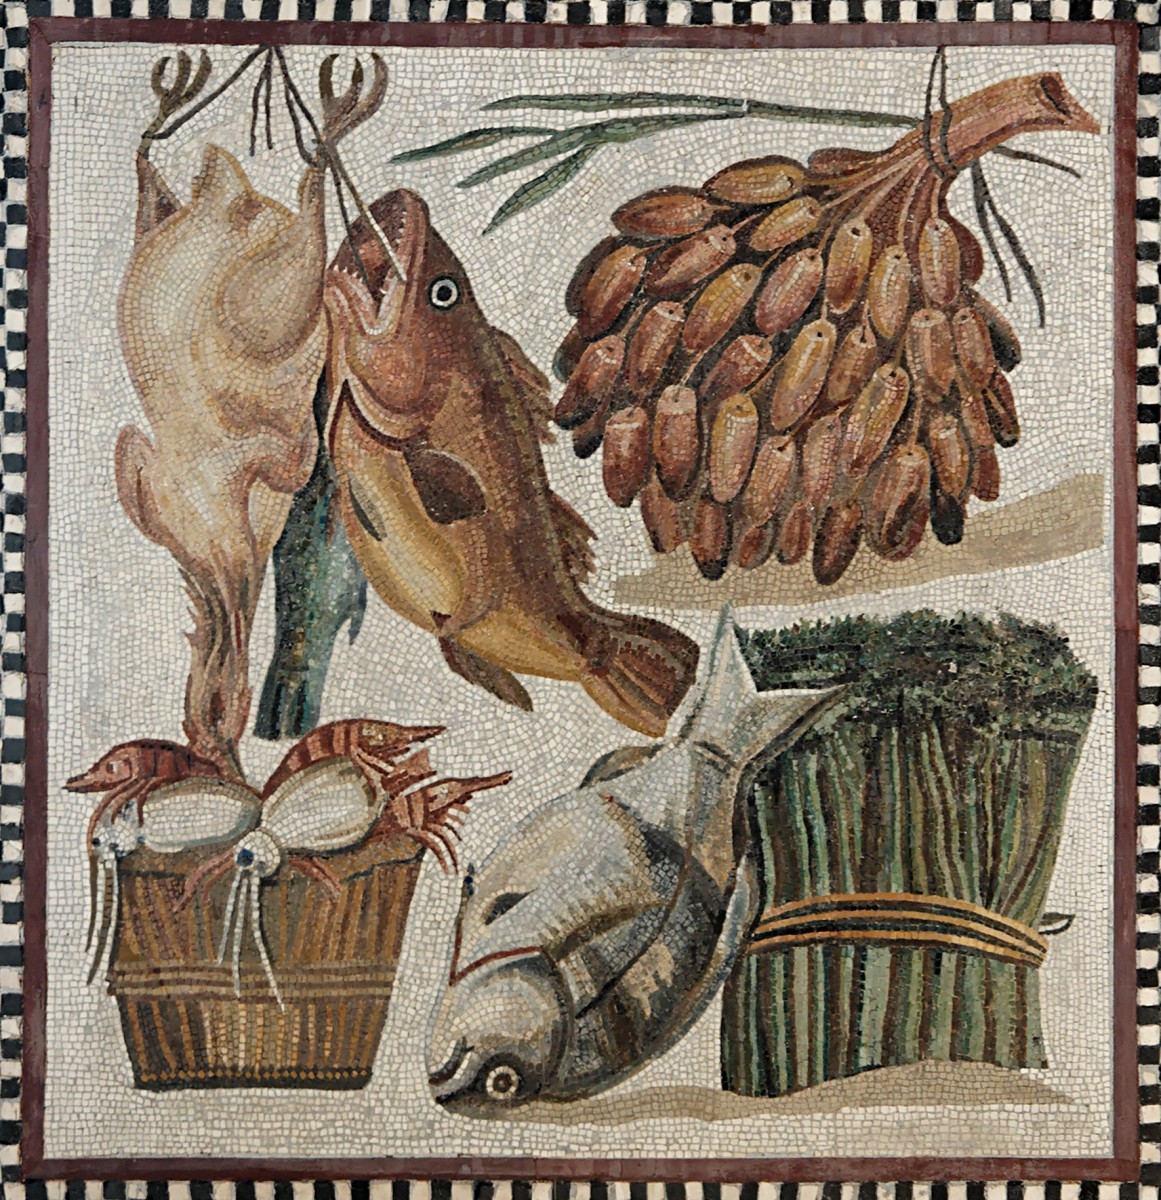 Roman tile mosaic depicting food items from a Tor Marancia villa, c. 2nd century CE.